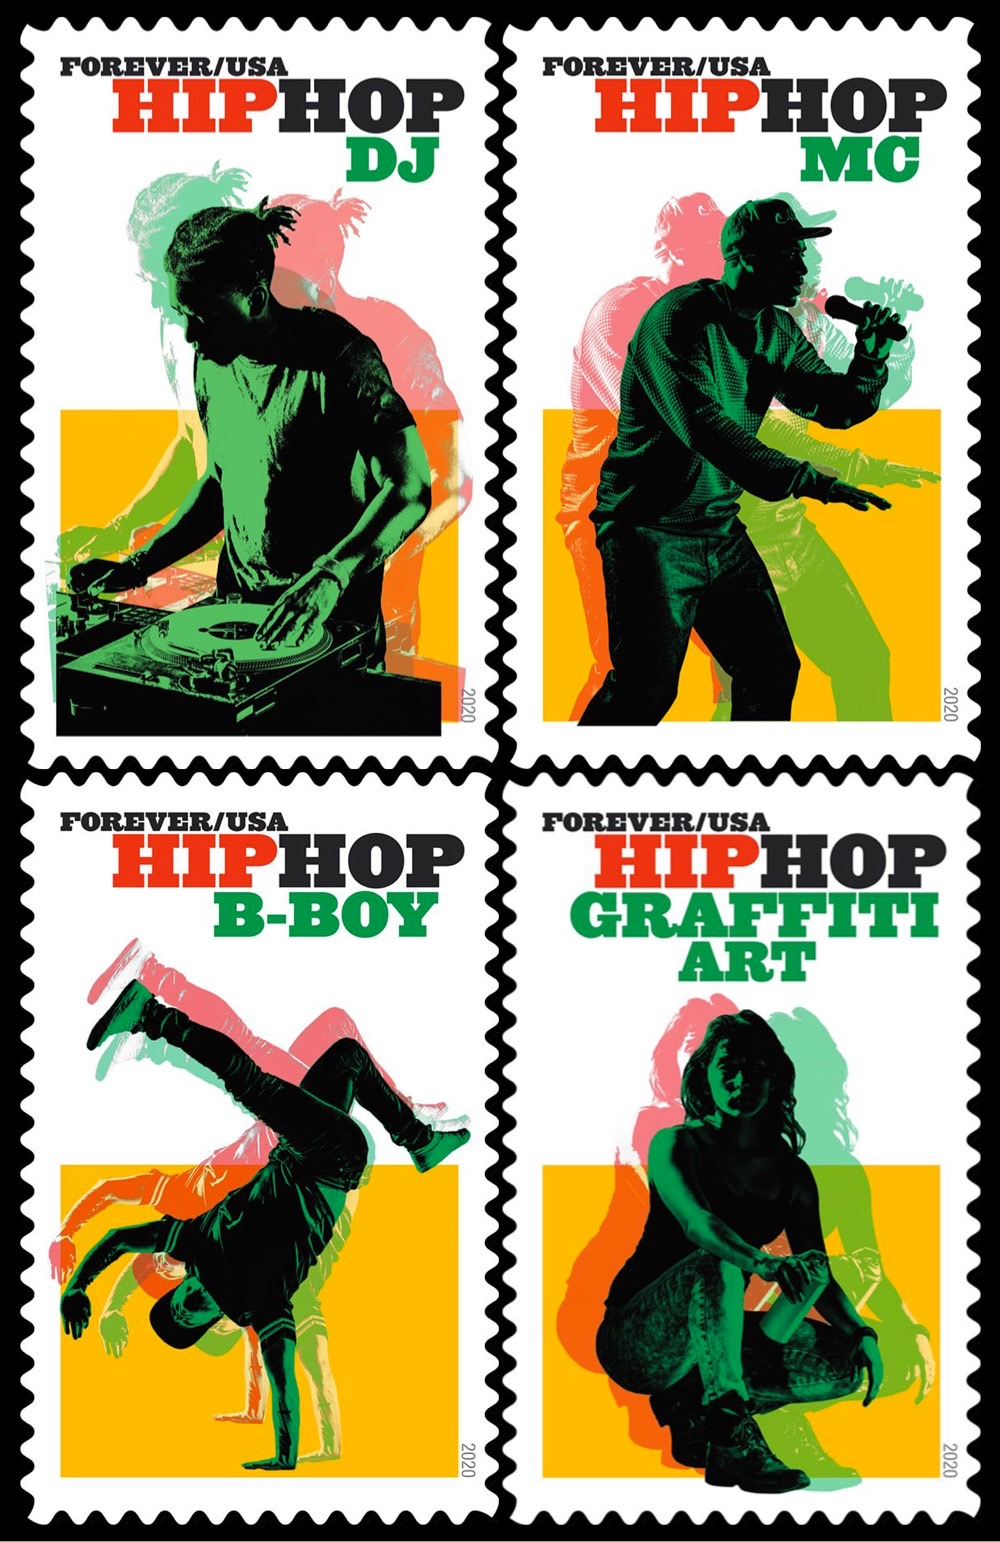 USPS hip hop stamps